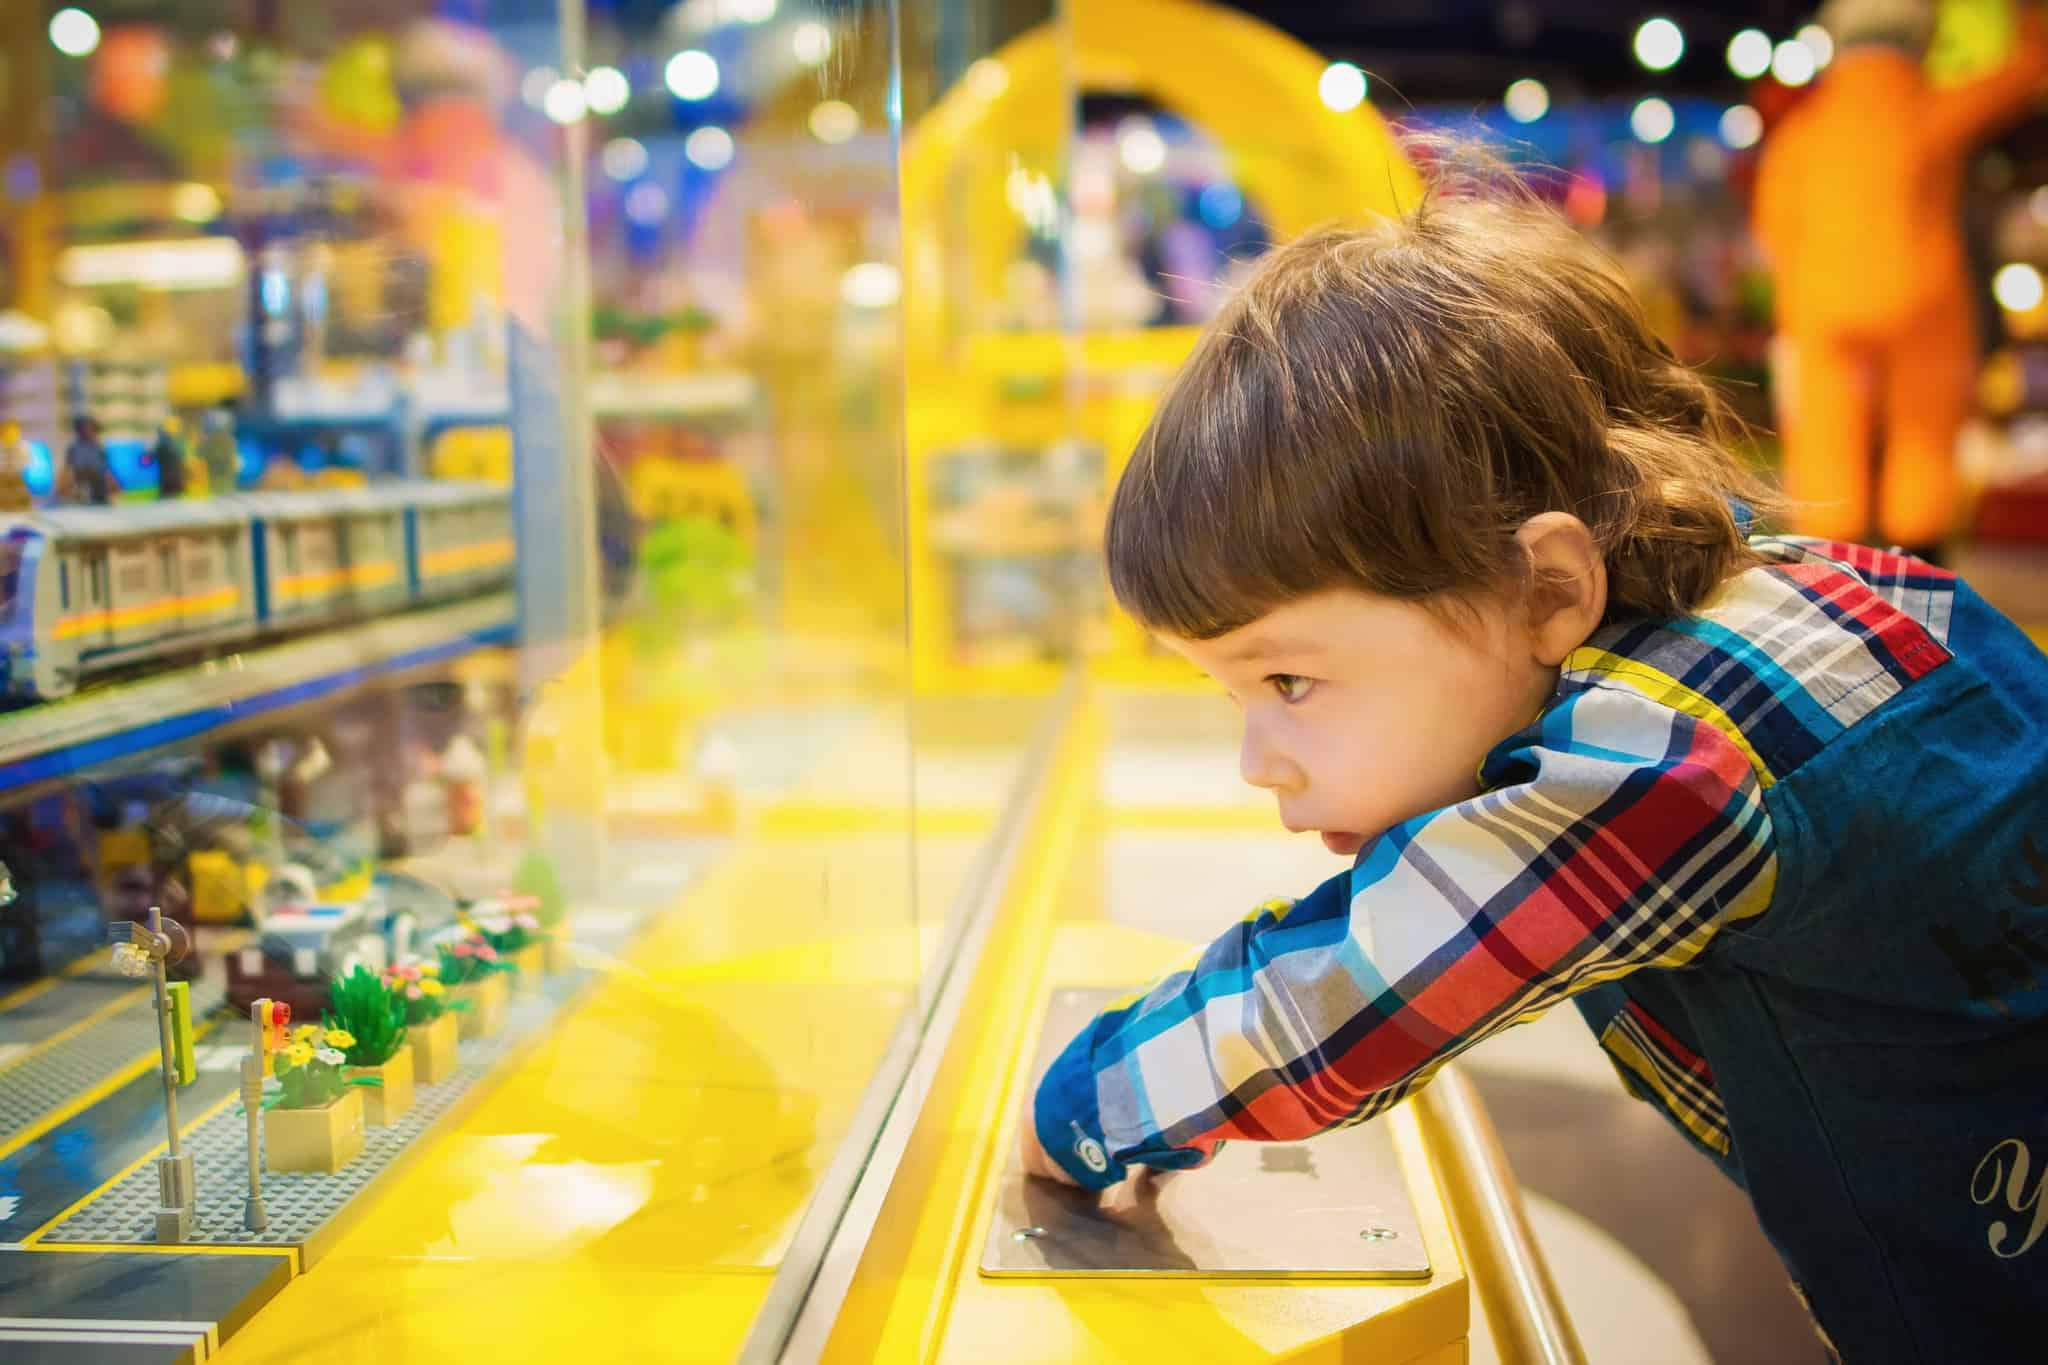 child looking at small toys through a glass wall